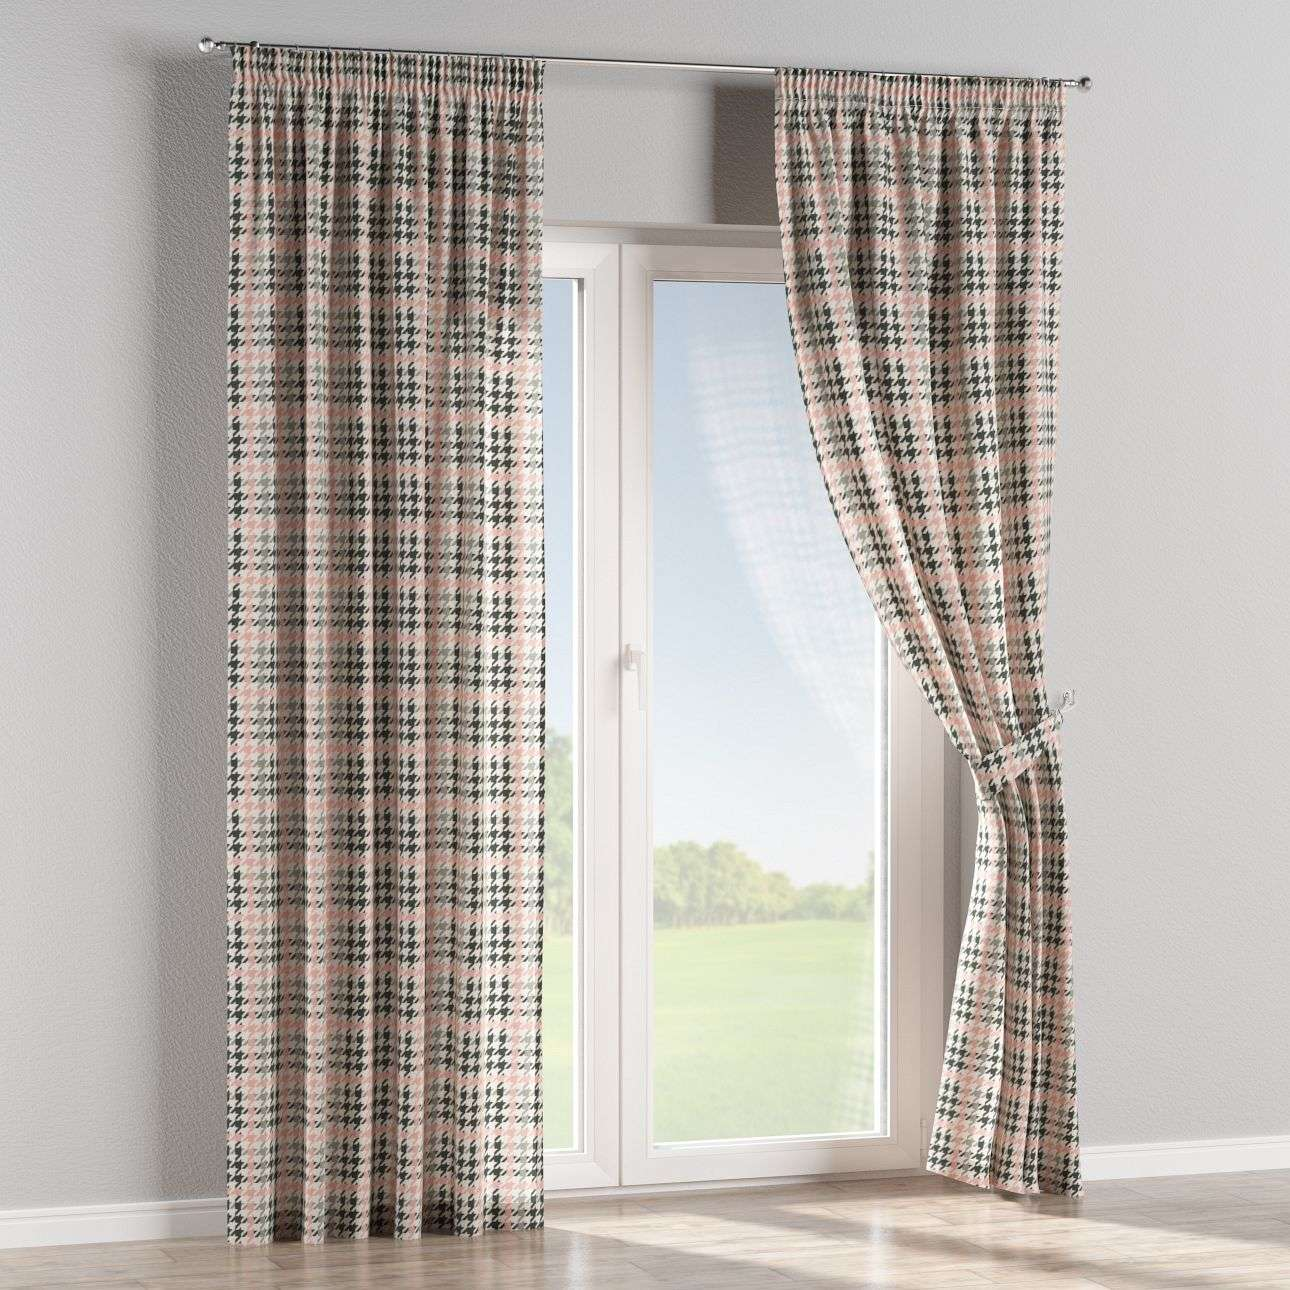 Pencil pleat curtains in collection Brooklyn, fabric: 137-75